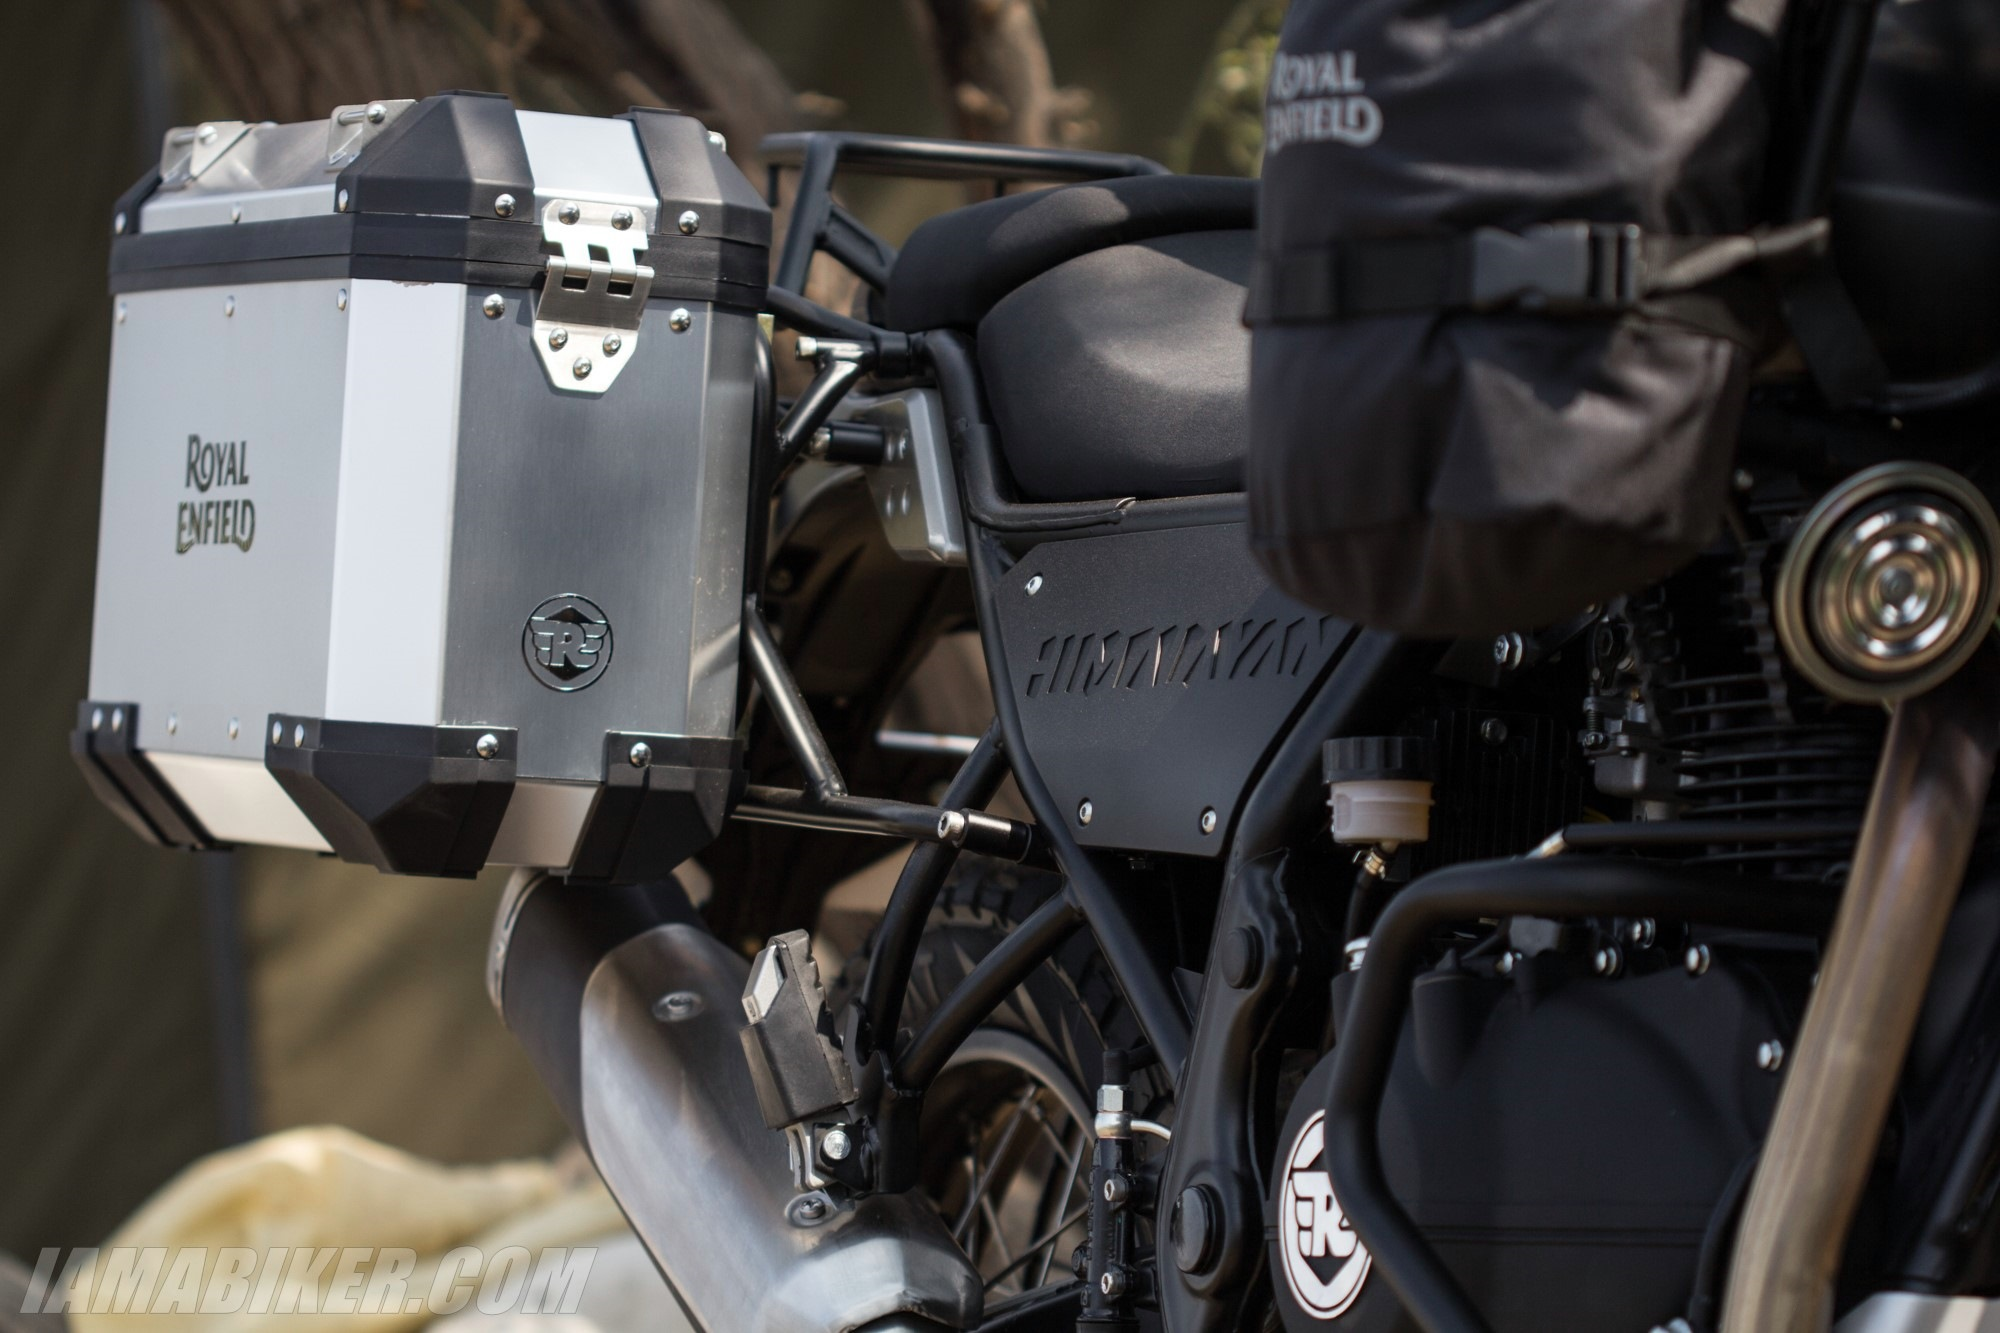 Royal Enfield Himalayan with panniers